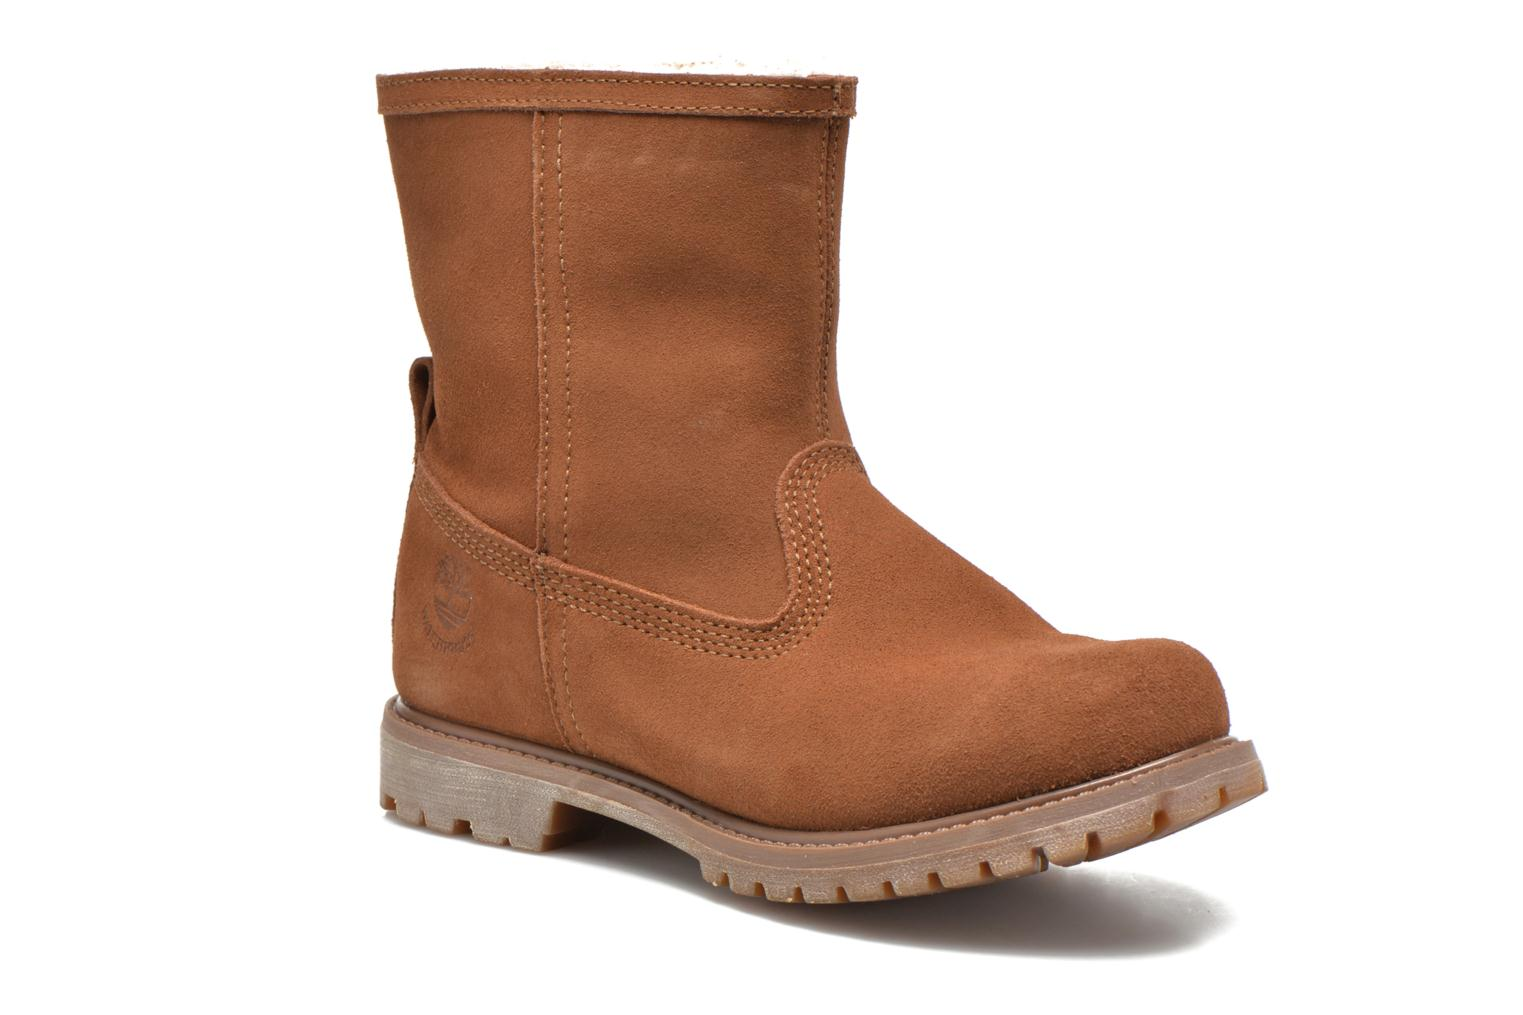 Bottines et boots Timberland Authentics Warm Line Marron vue détail/paire